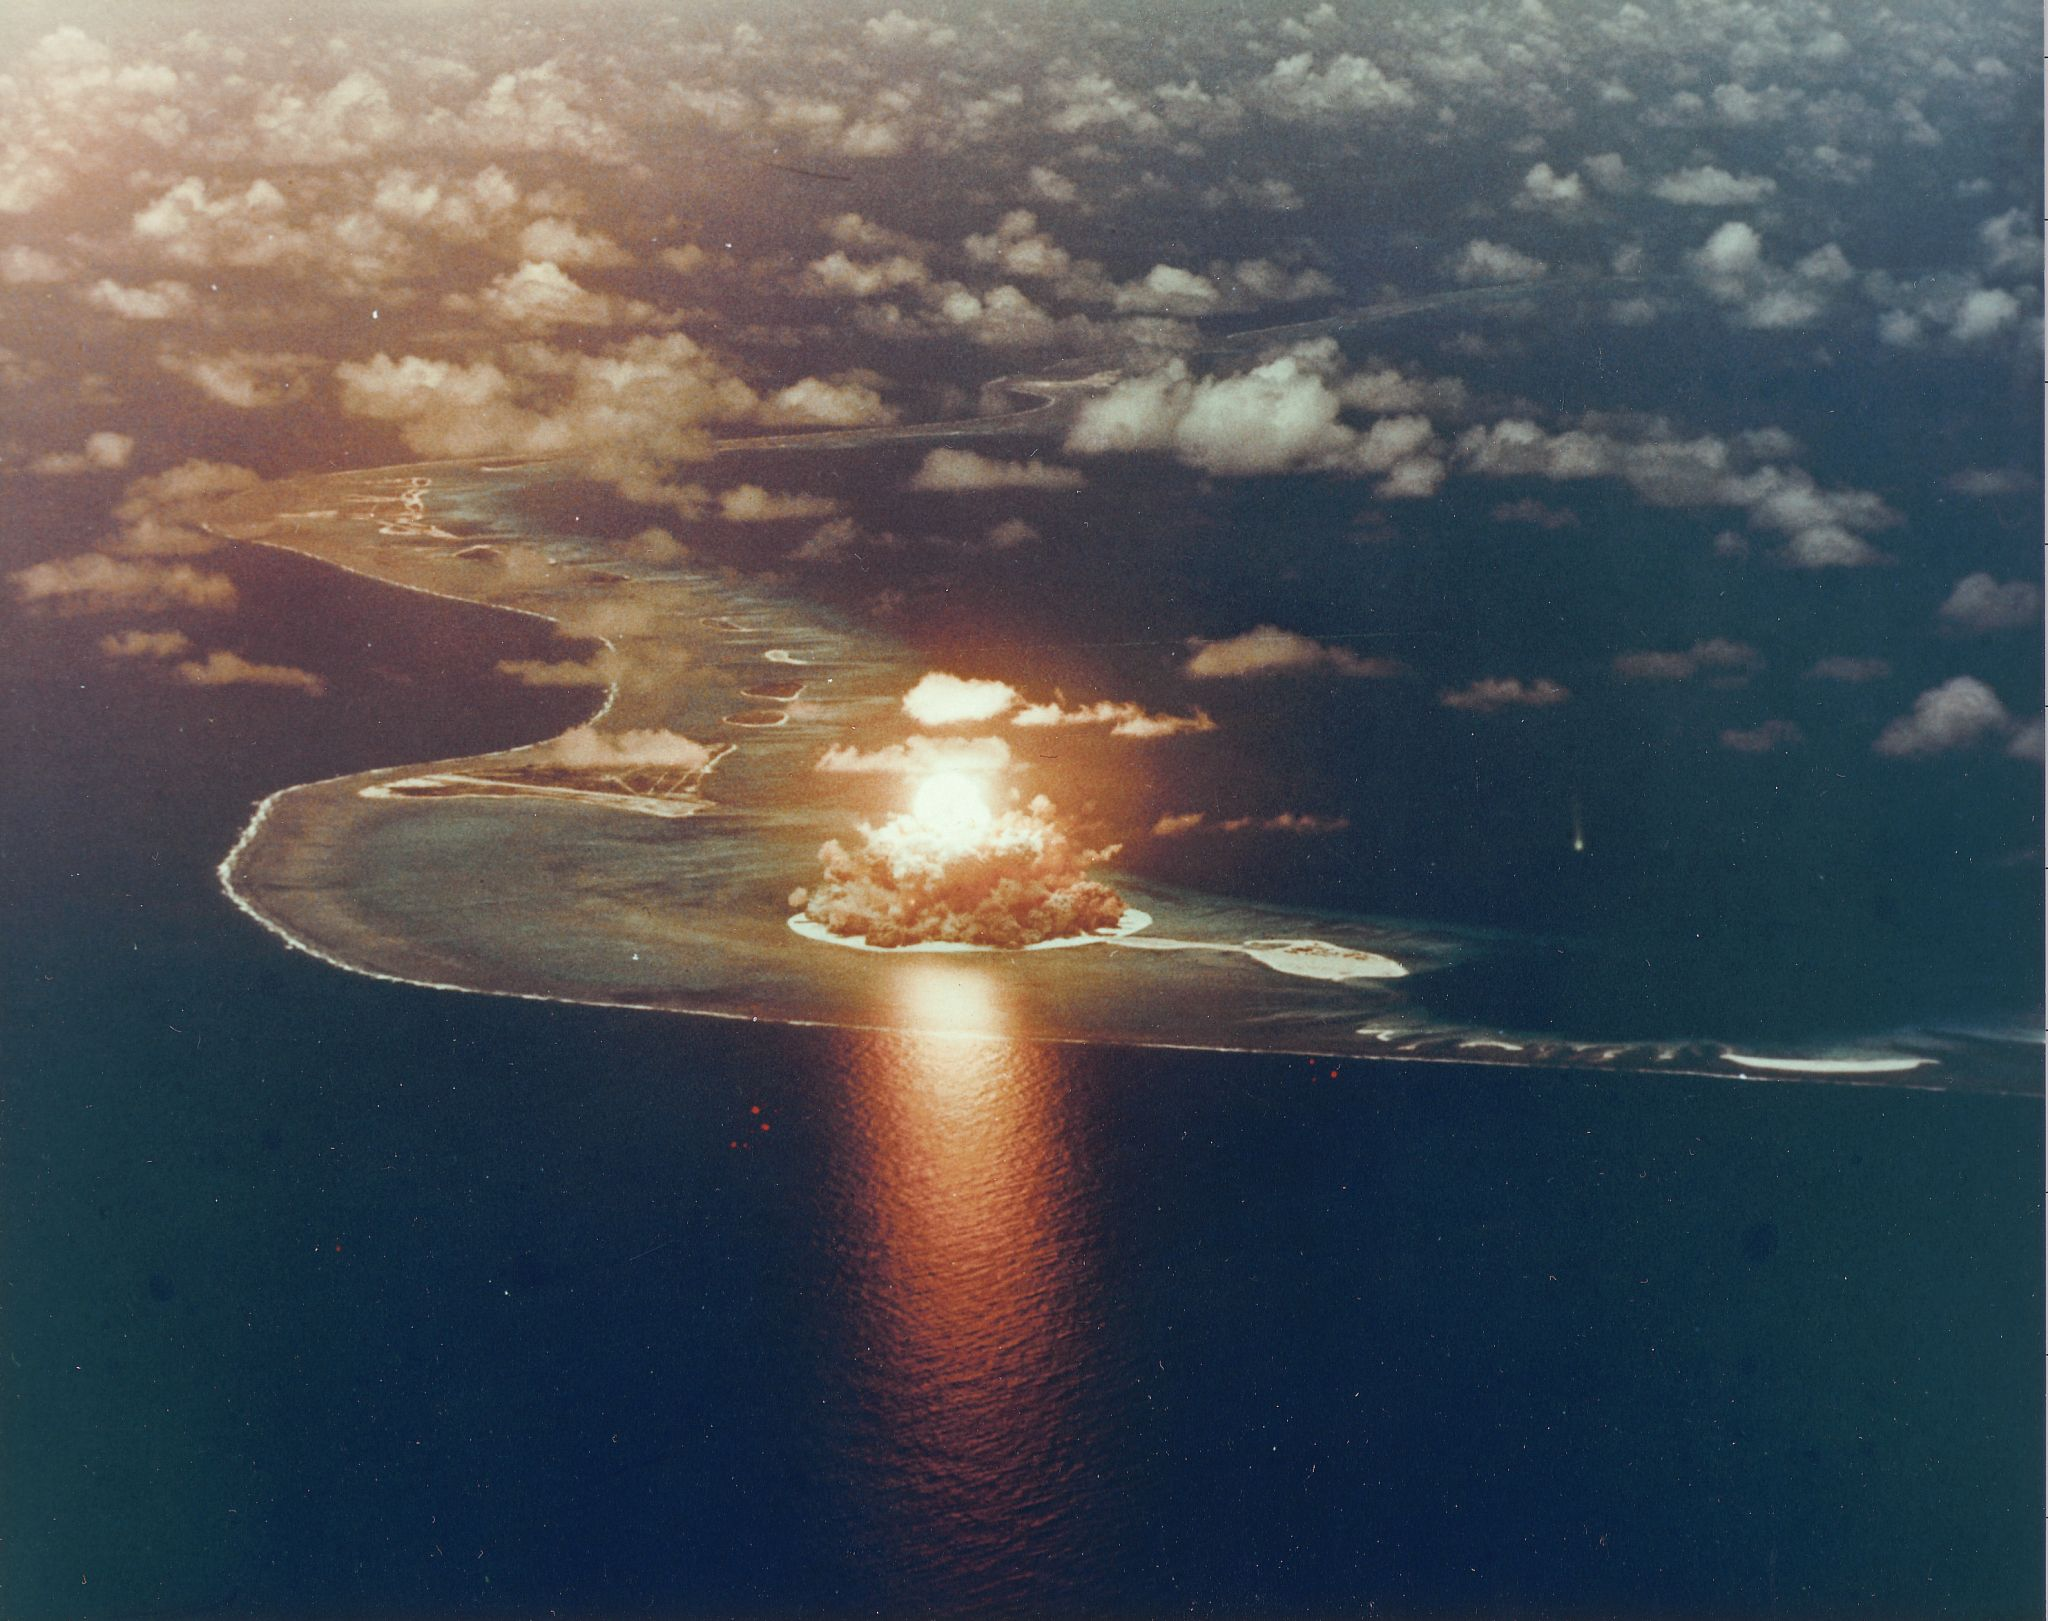 The US put nuclear waste under a dome on a Pacific island. Now it's cracking open.